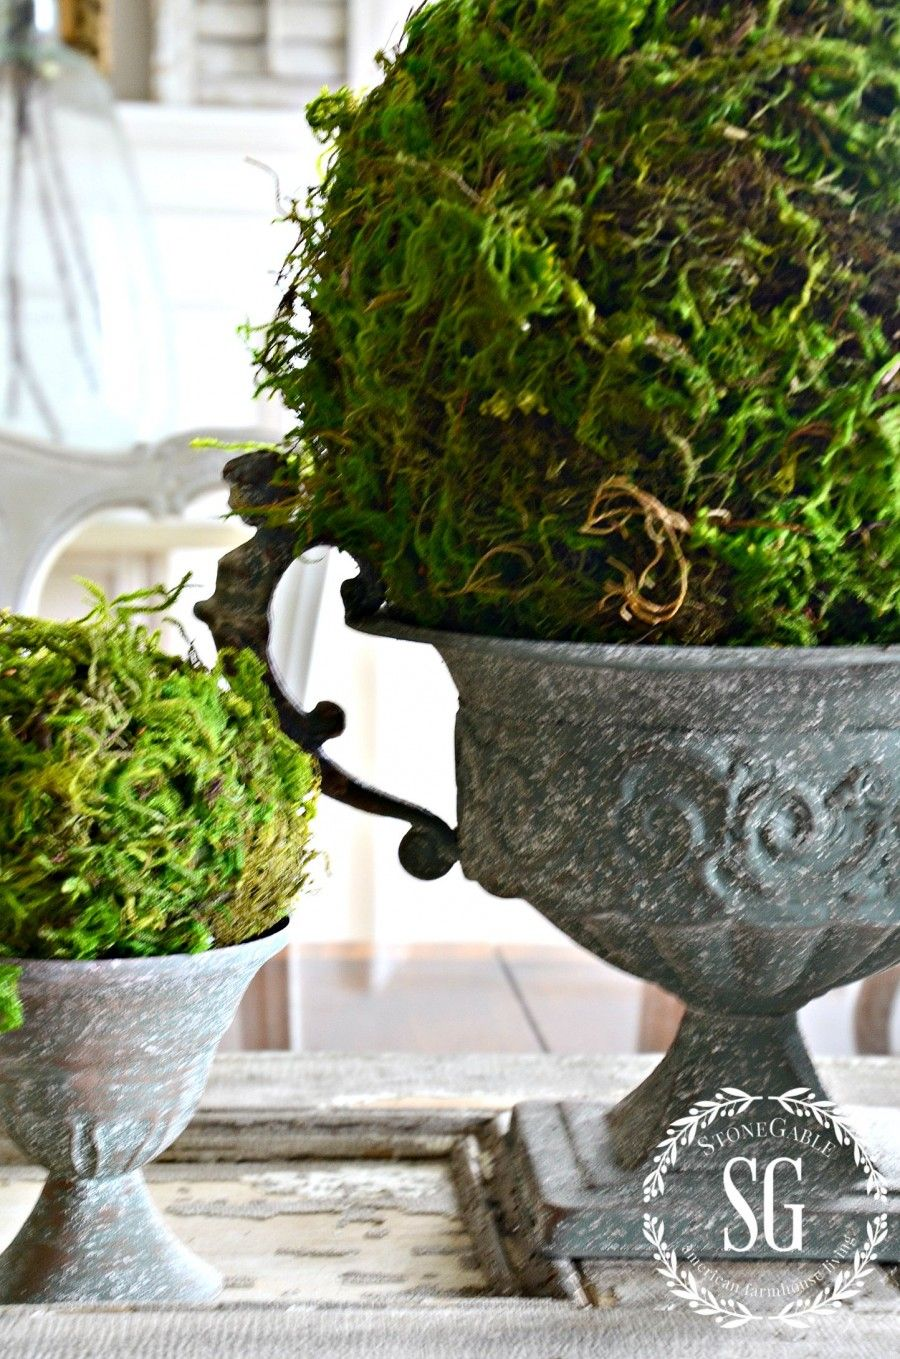 Garden decor craft ideas  TEXTURED MOSS BALL DIY  Craft Vignettes and DIY ideas